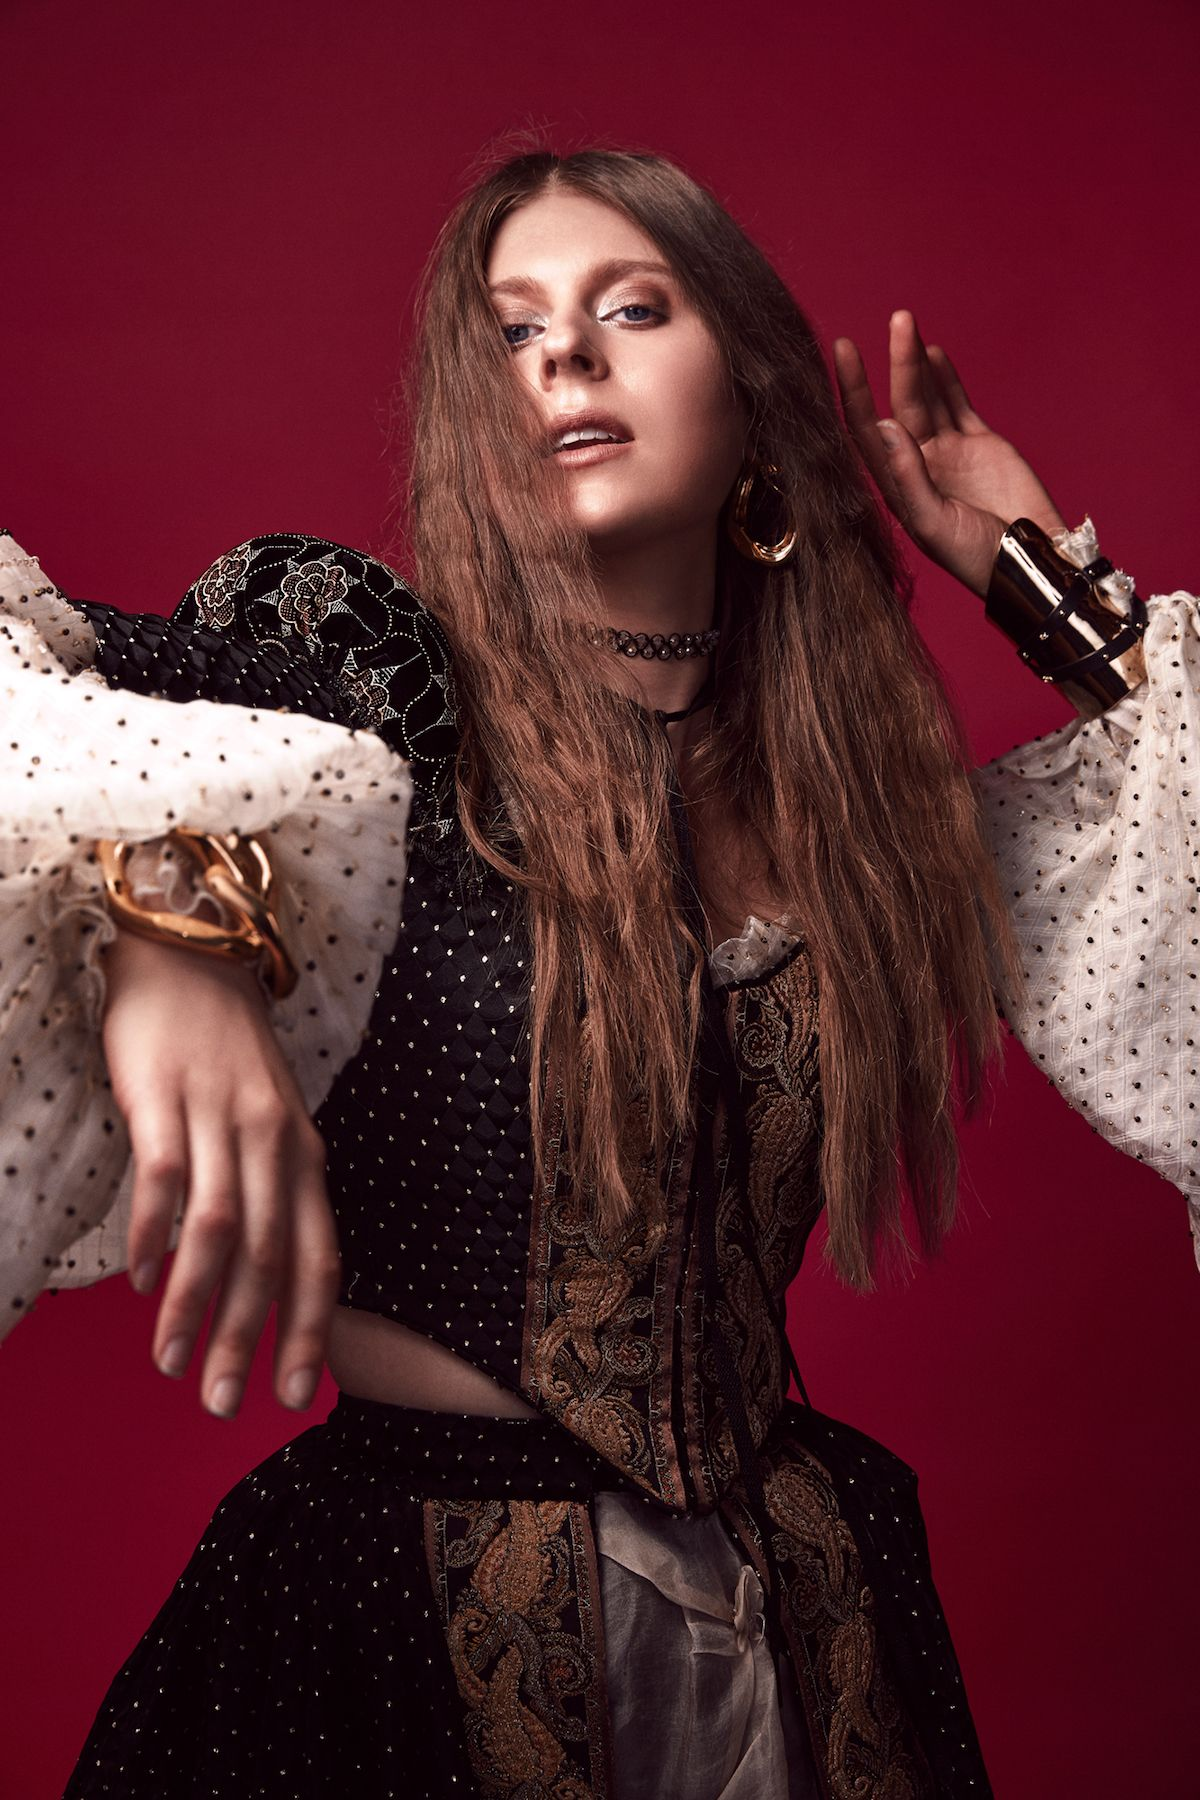 Lydia Ainsworth - Darling Of The Afterglow - - https://www.musikblog.de/2017/04/lydia-ainsworth-darling-of-the-afterglow/ #LydiaAinsworth